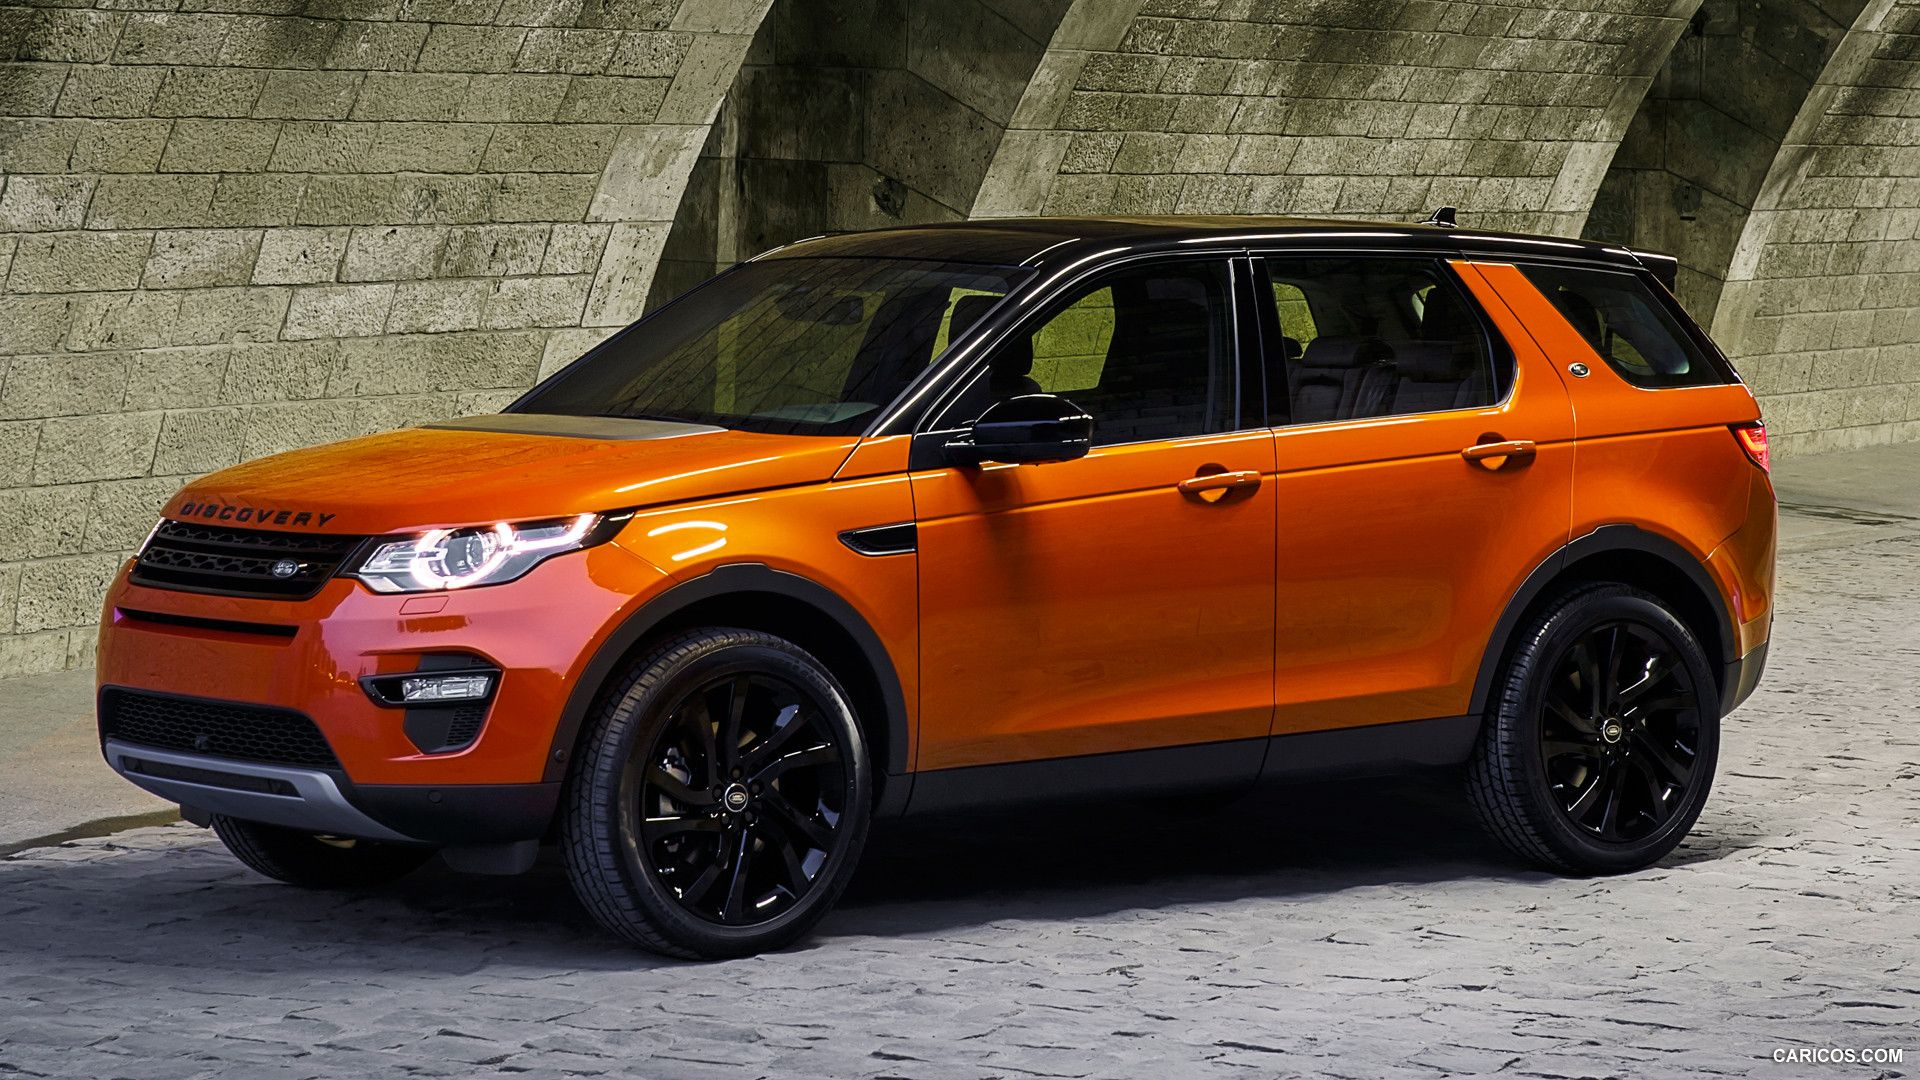 2015 Land Rover Discovery Sport - Side | HD Wallpaper #83 ...